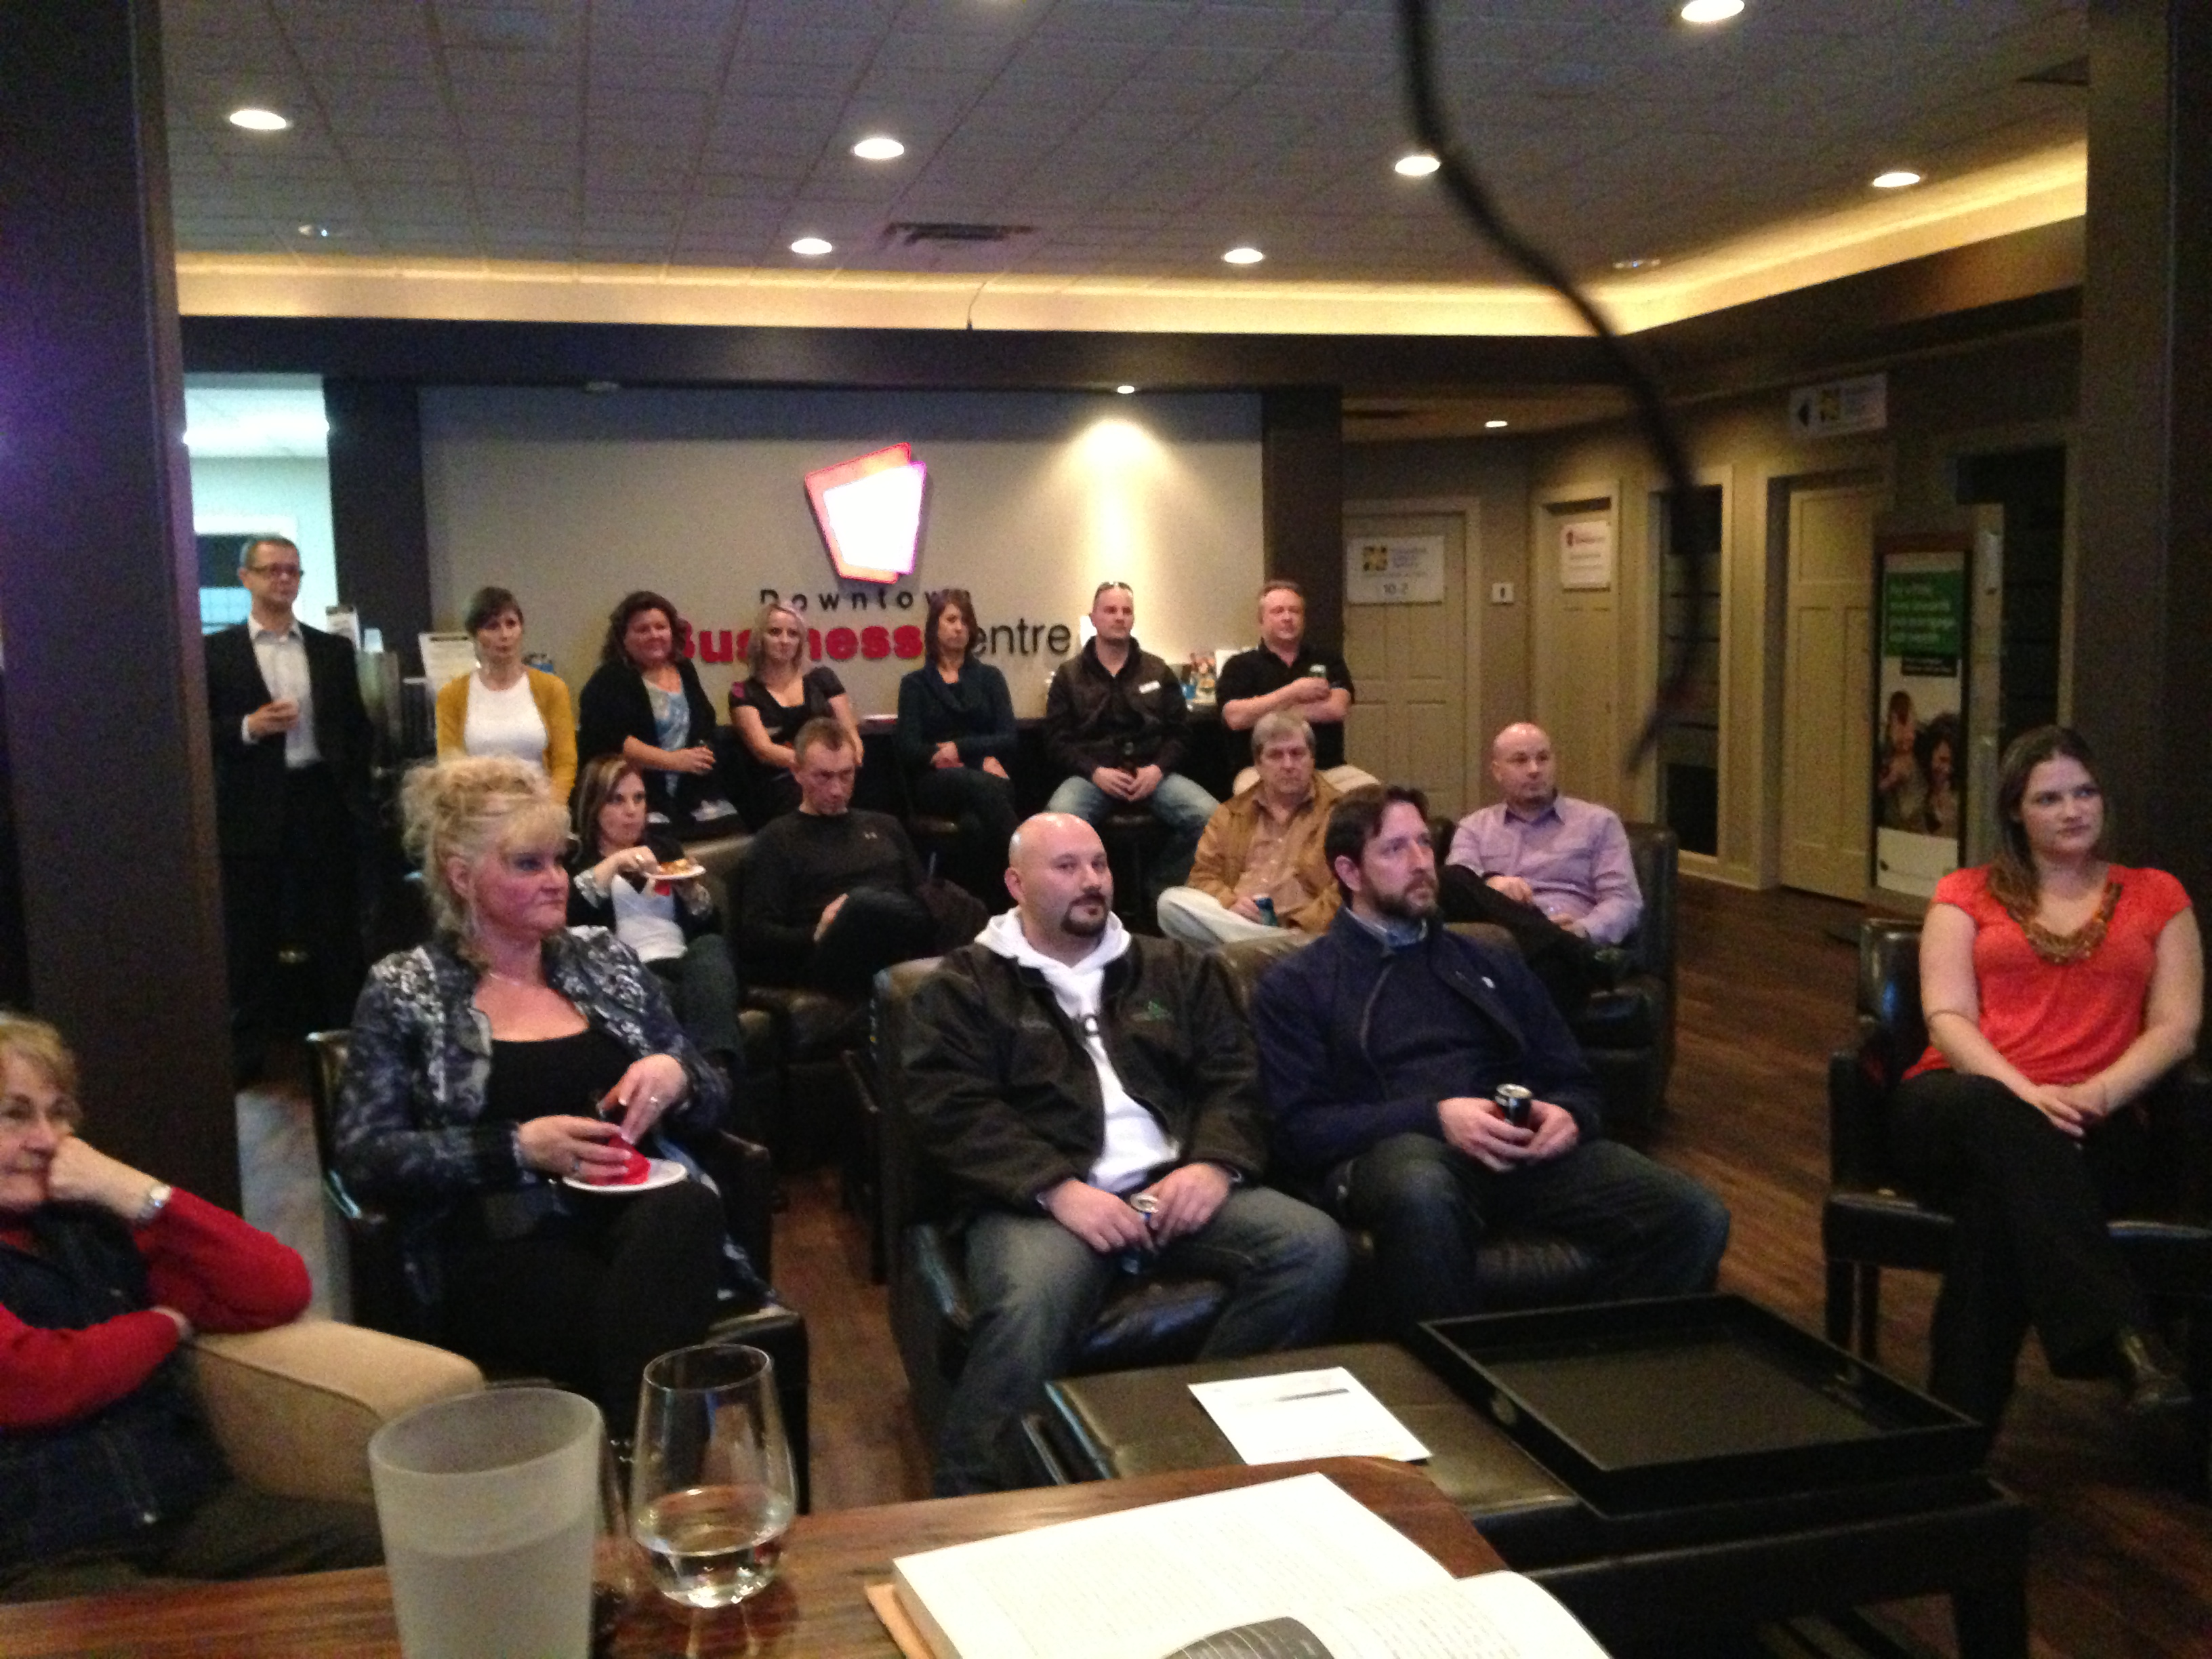 chilliwack real estate website event